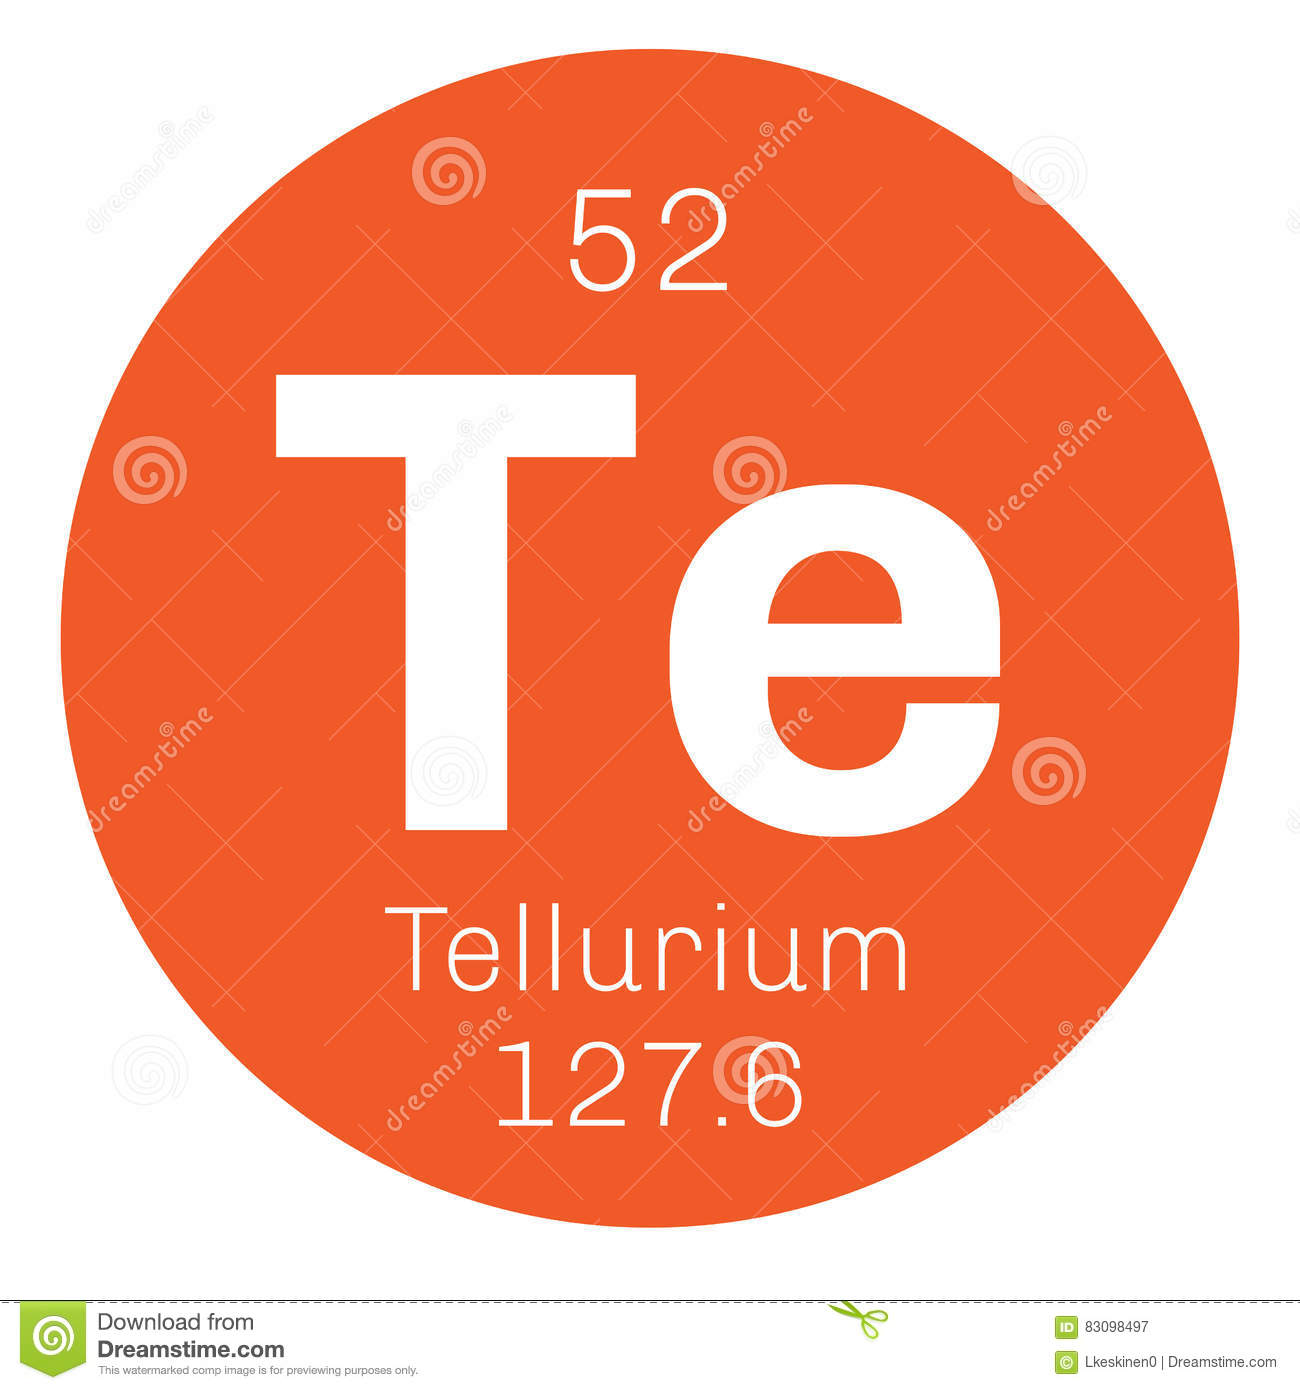 Tellurium chemical element stock vector. Illustration of ...